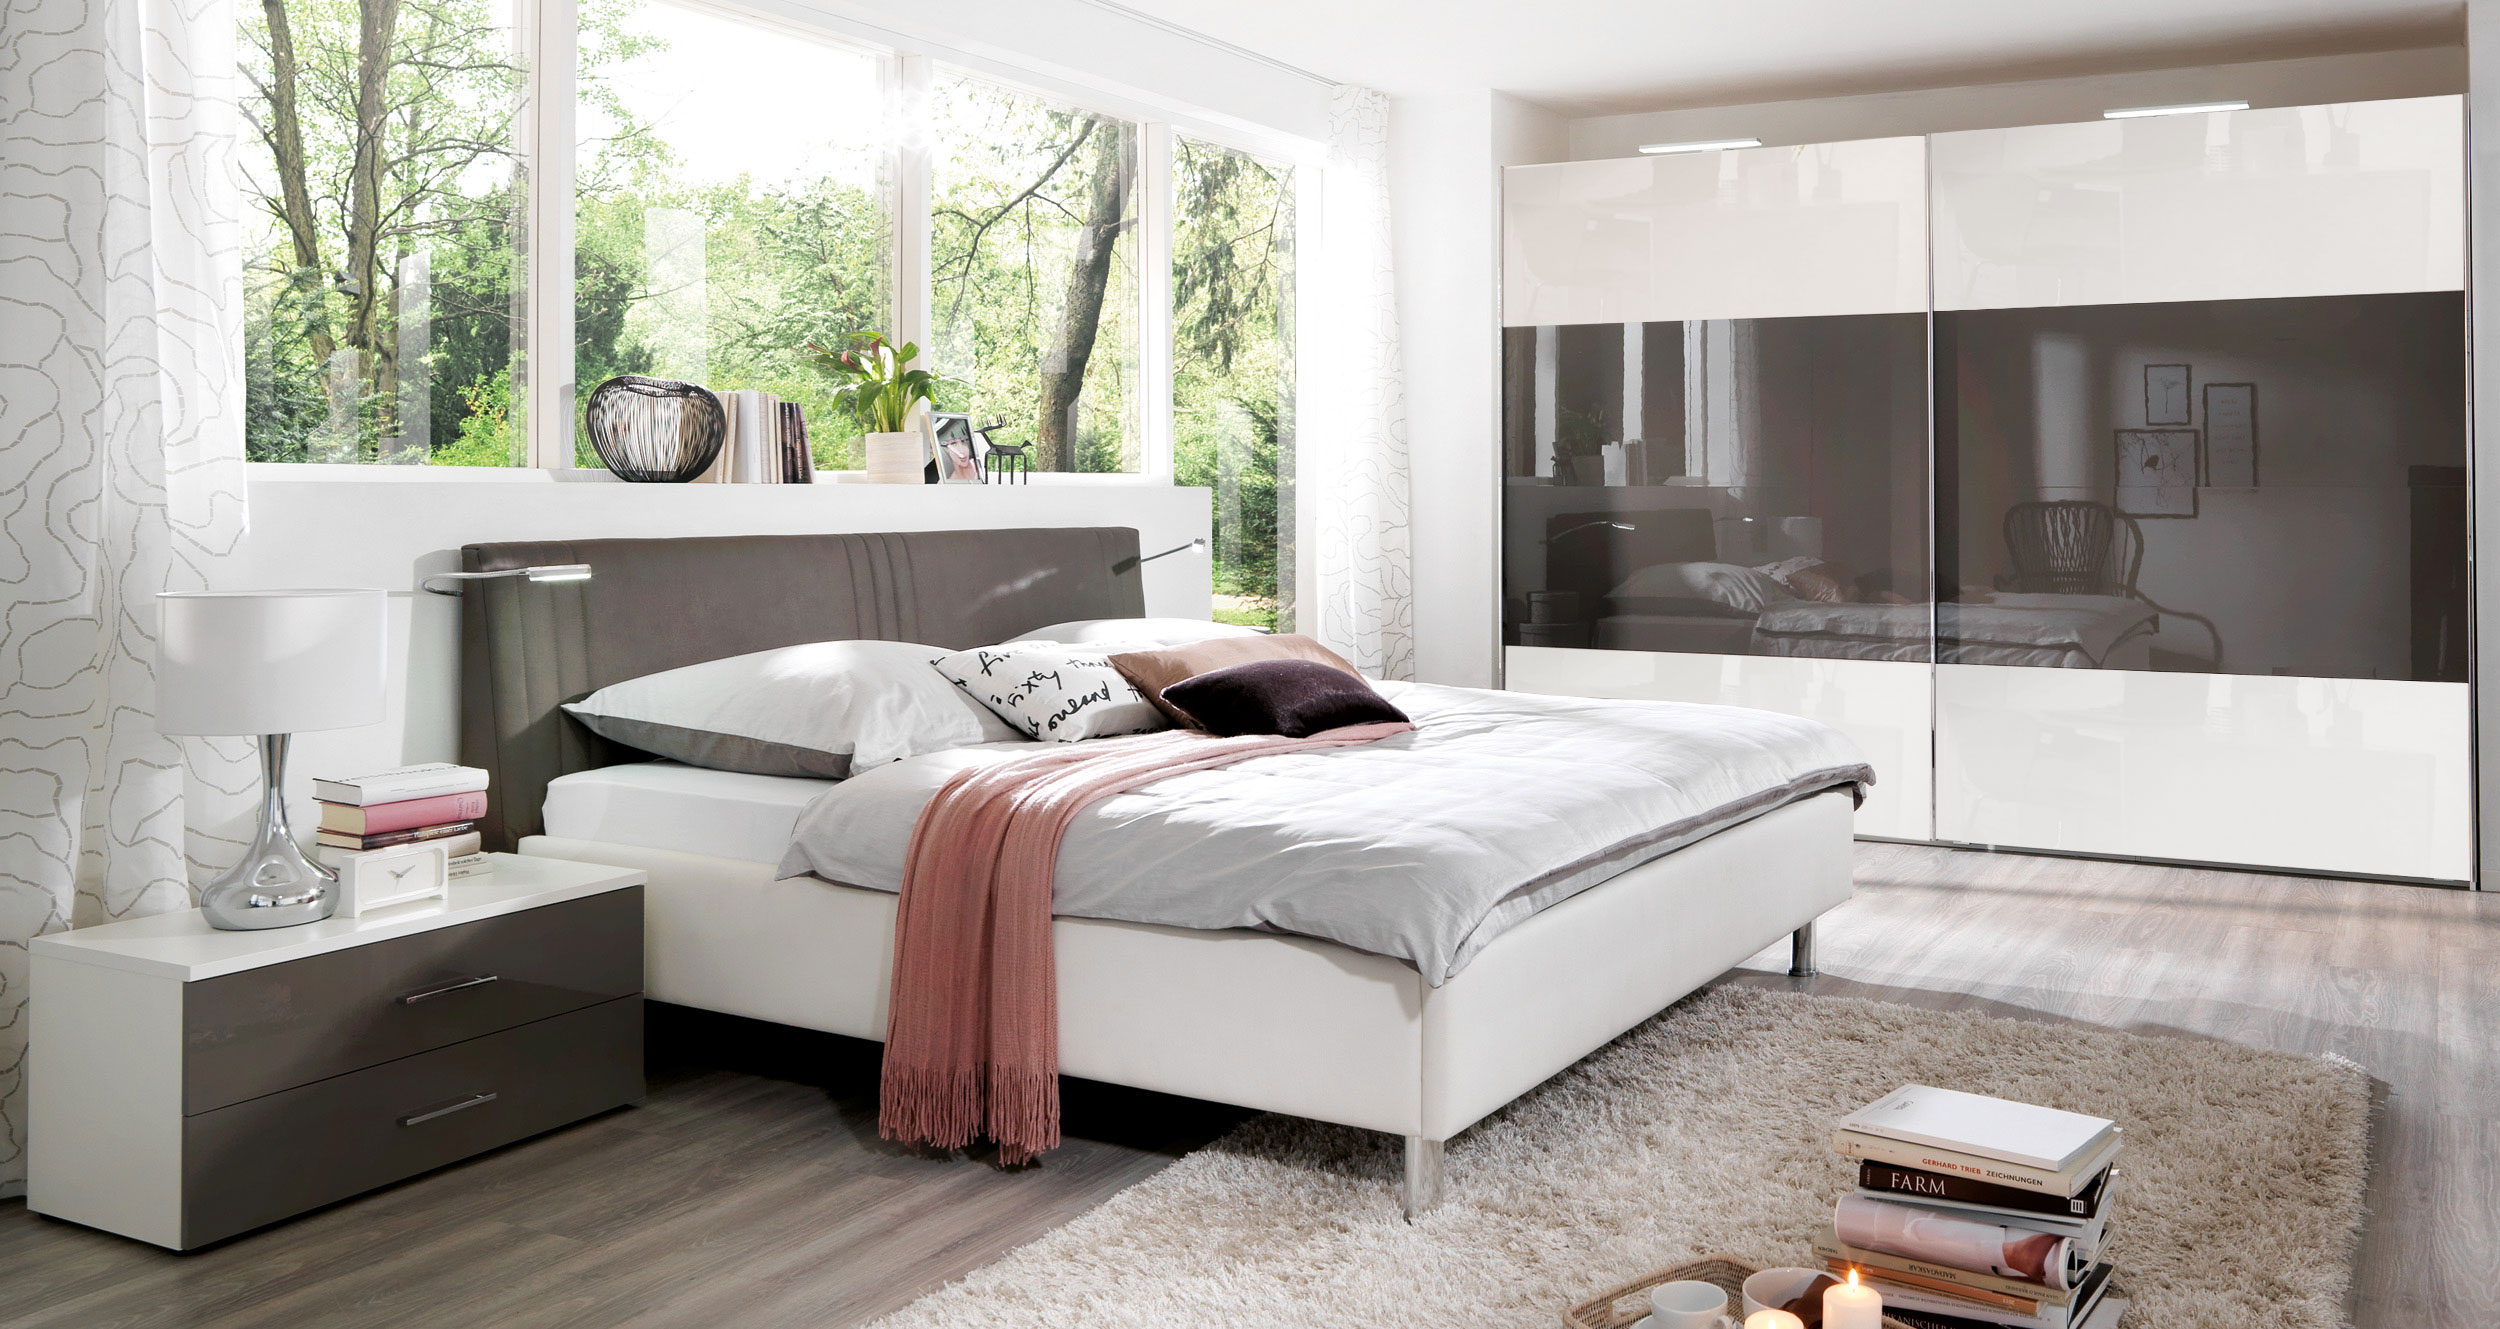 welle kleiderschrankwunder ksw 5 schlafzimmer einrichten m belmeile24. Black Bedroom Furniture Sets. Home Design Ideas